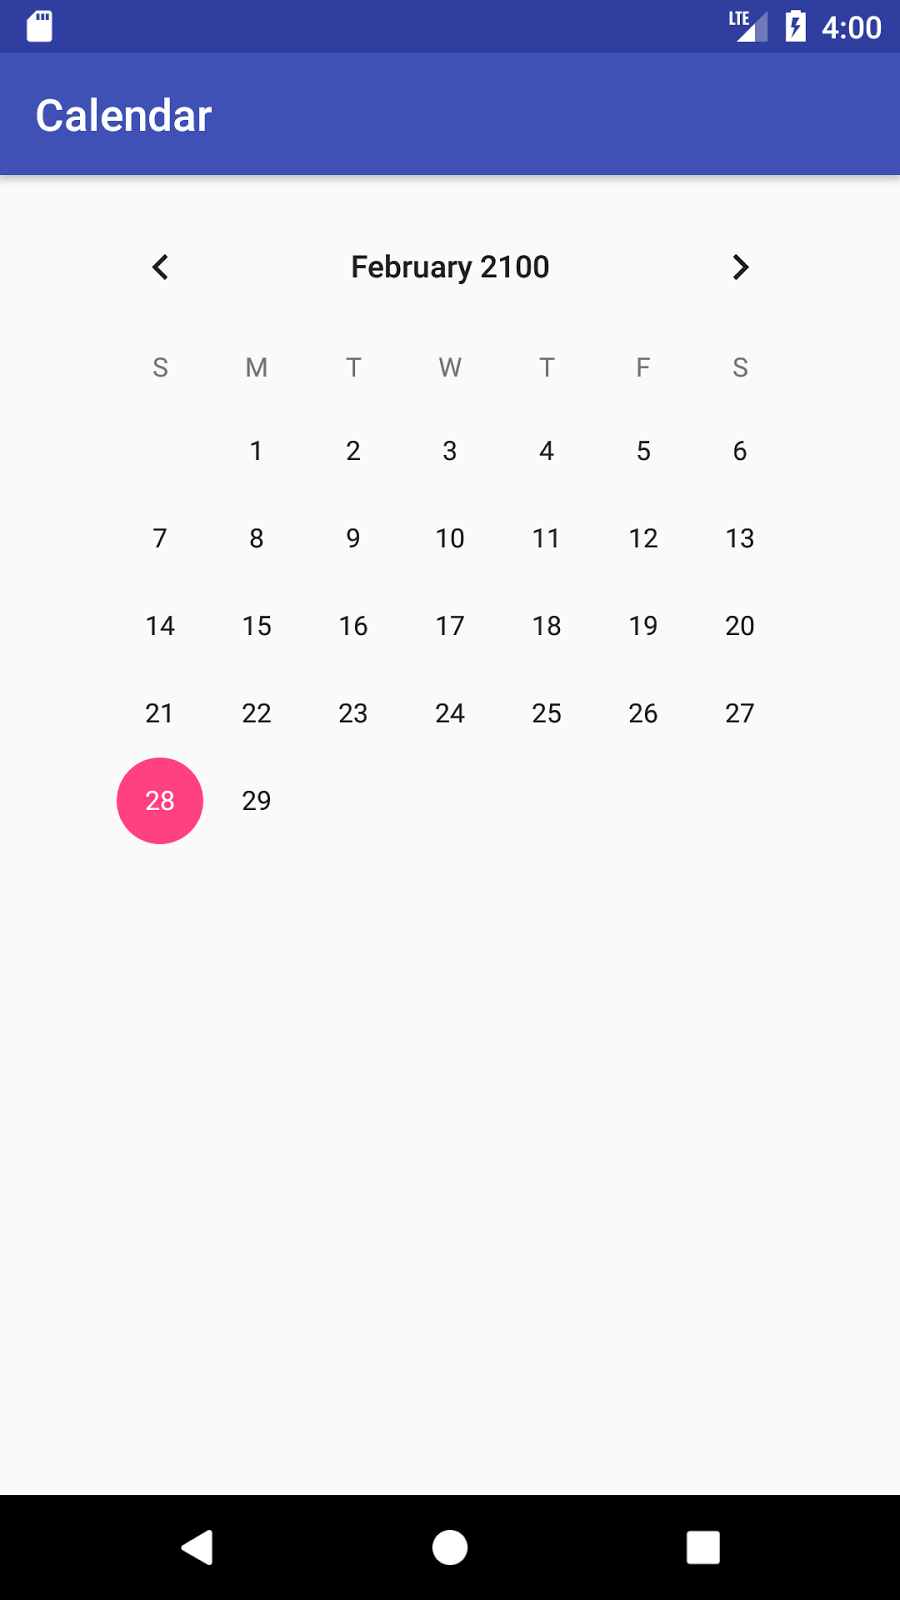 Gregorian calendar android example using pdfview